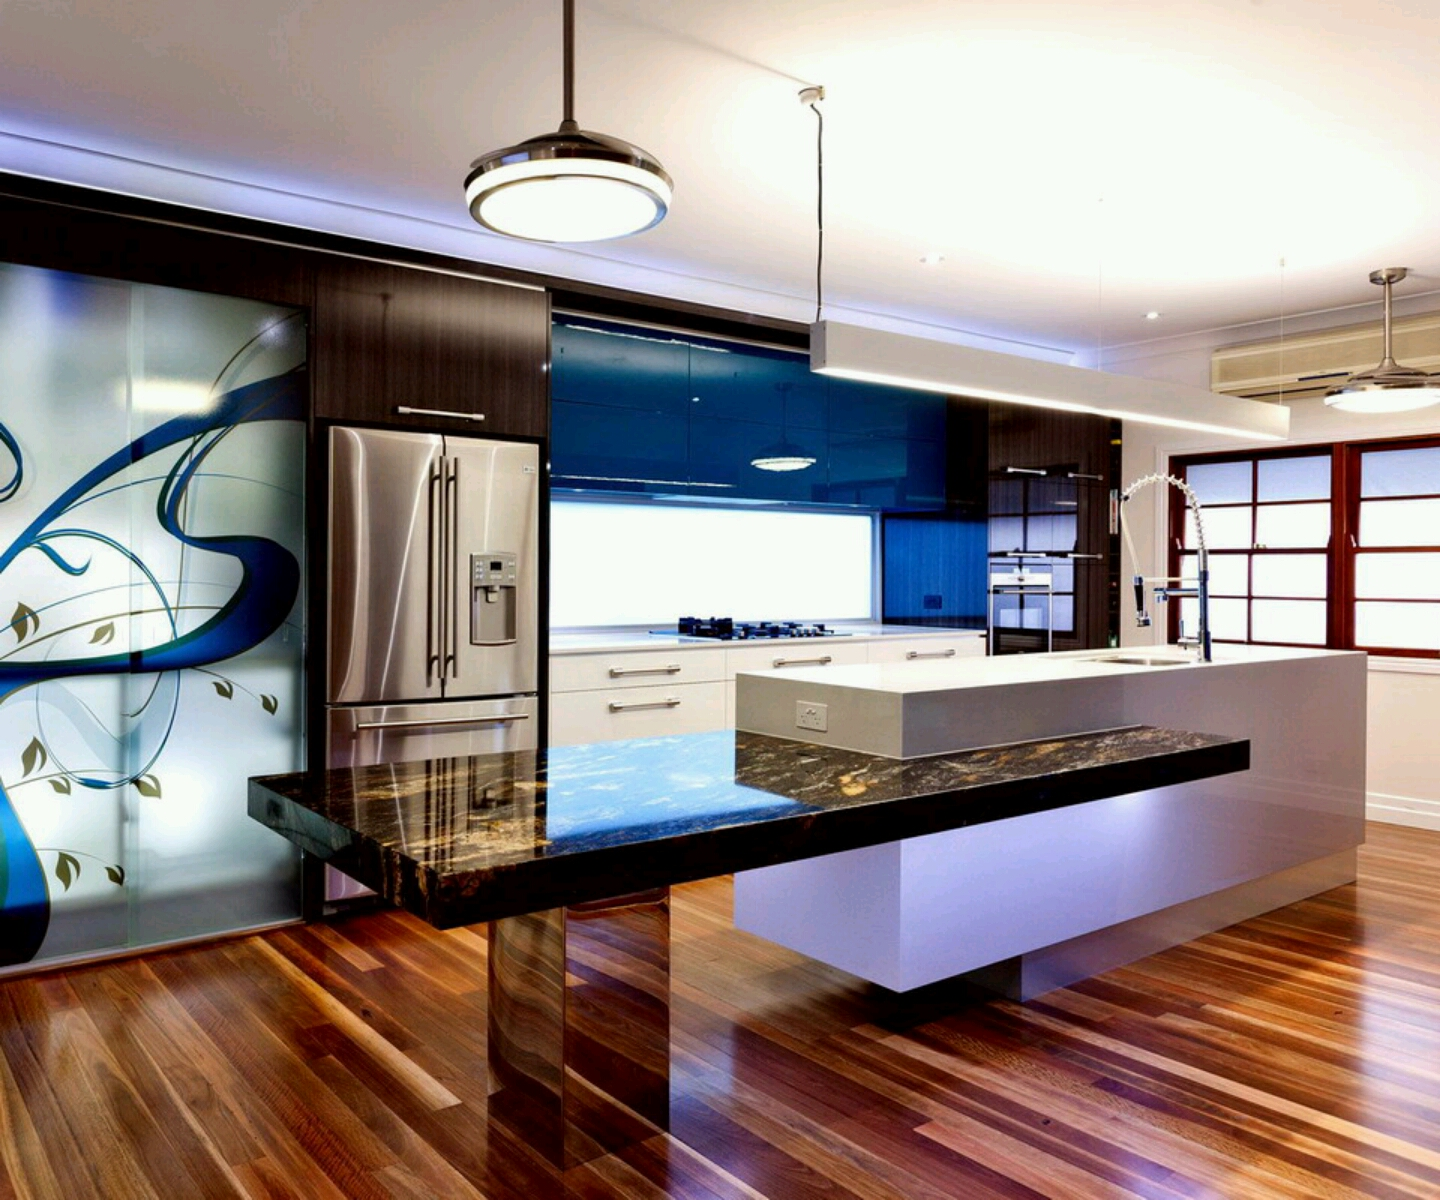 Ultra modern kitchen designs ideas new home designs for Homey kitchen designs